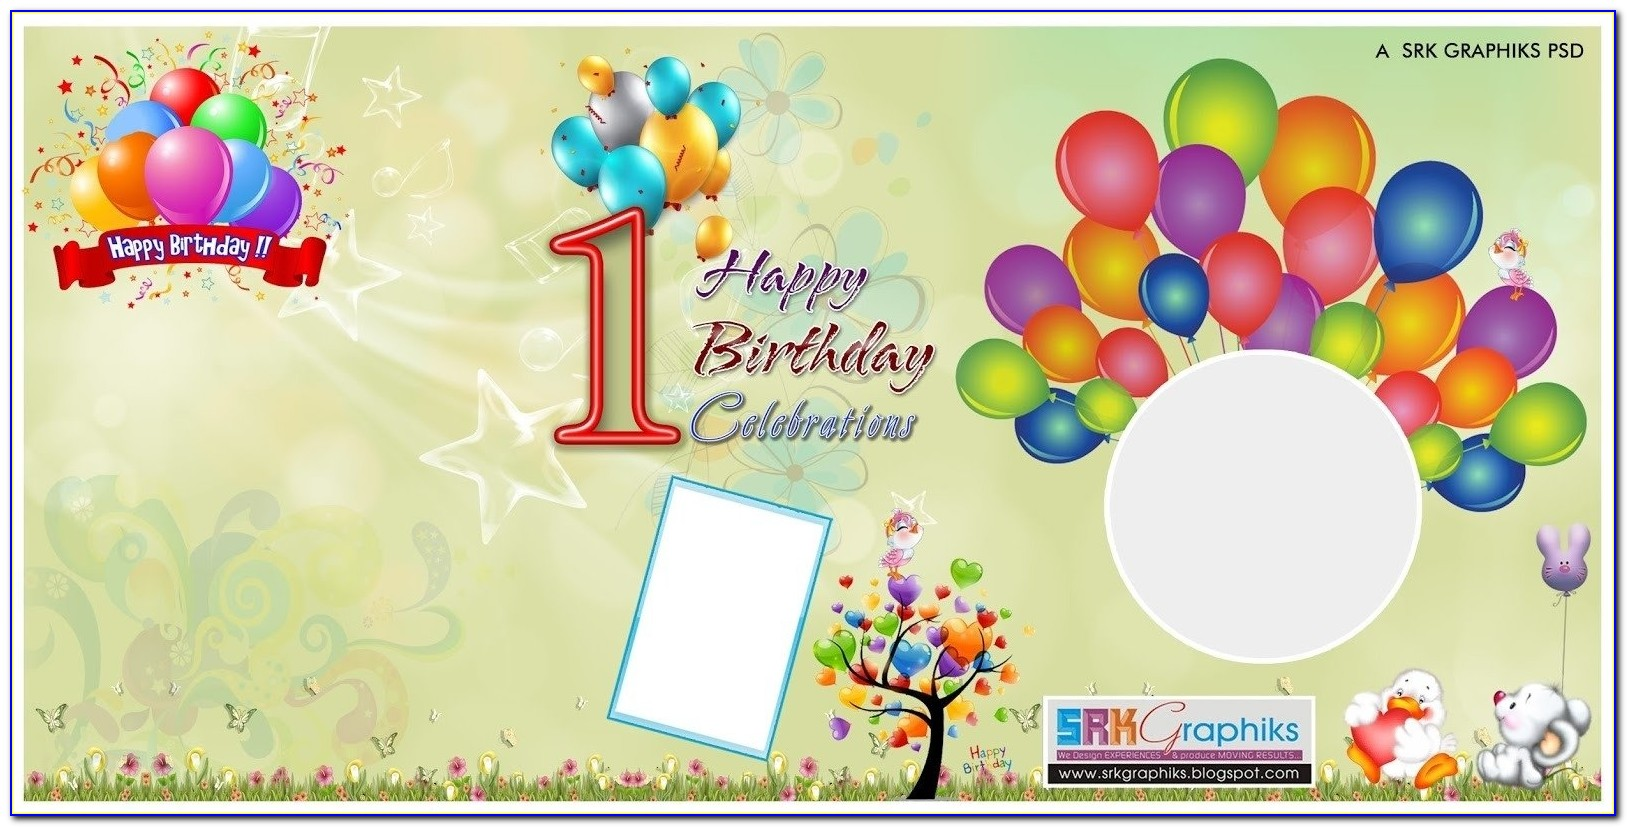 Birthday Banner Design Photoshop Template For Free Srk Graphics With Birthday Flex Banner Background Design